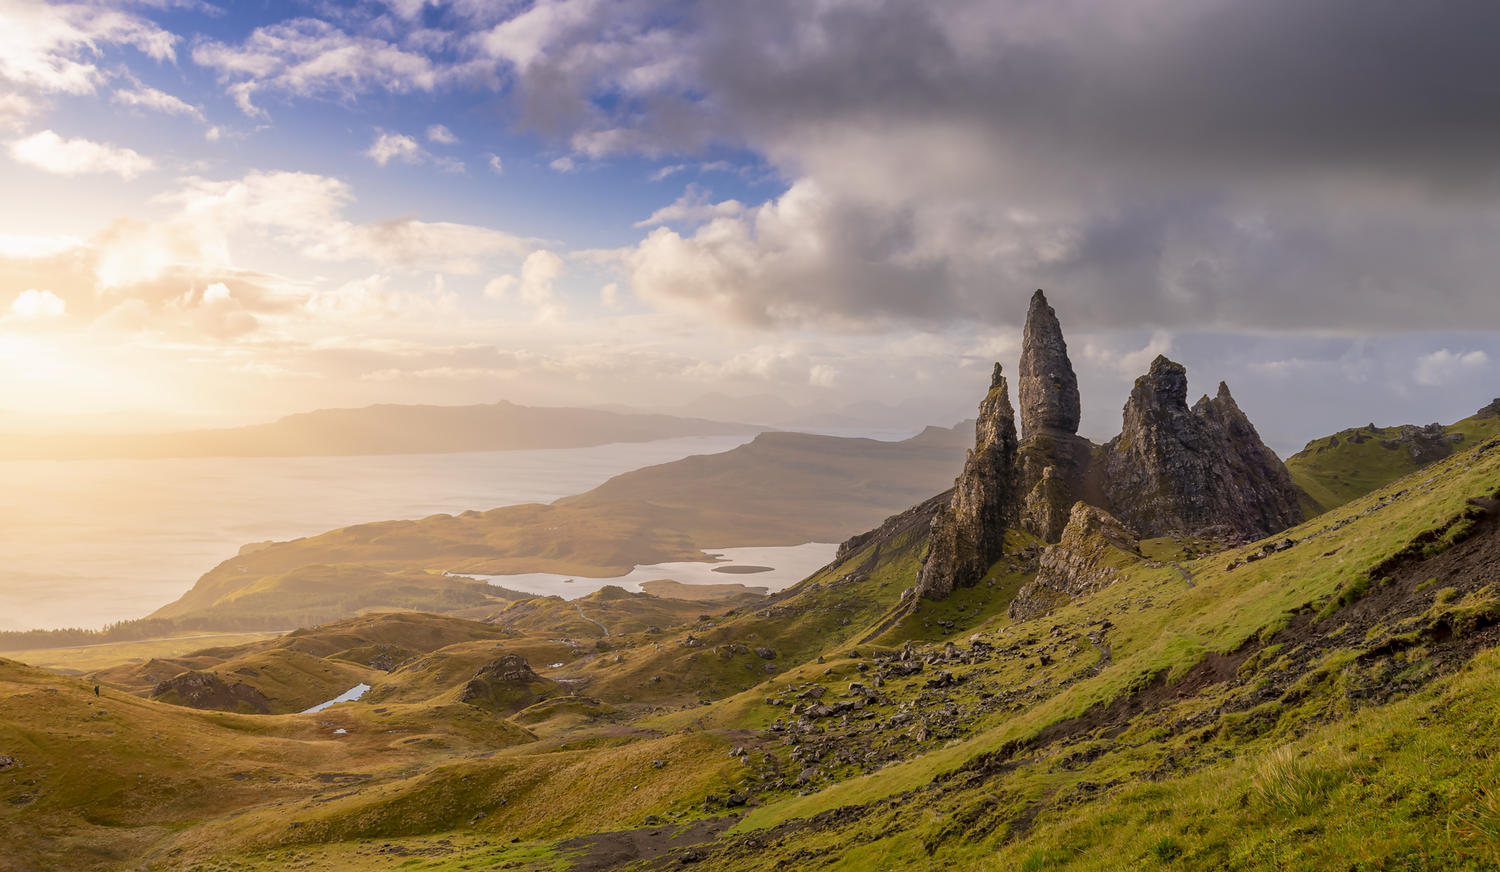 The Old Man of Storr by Onn Henner